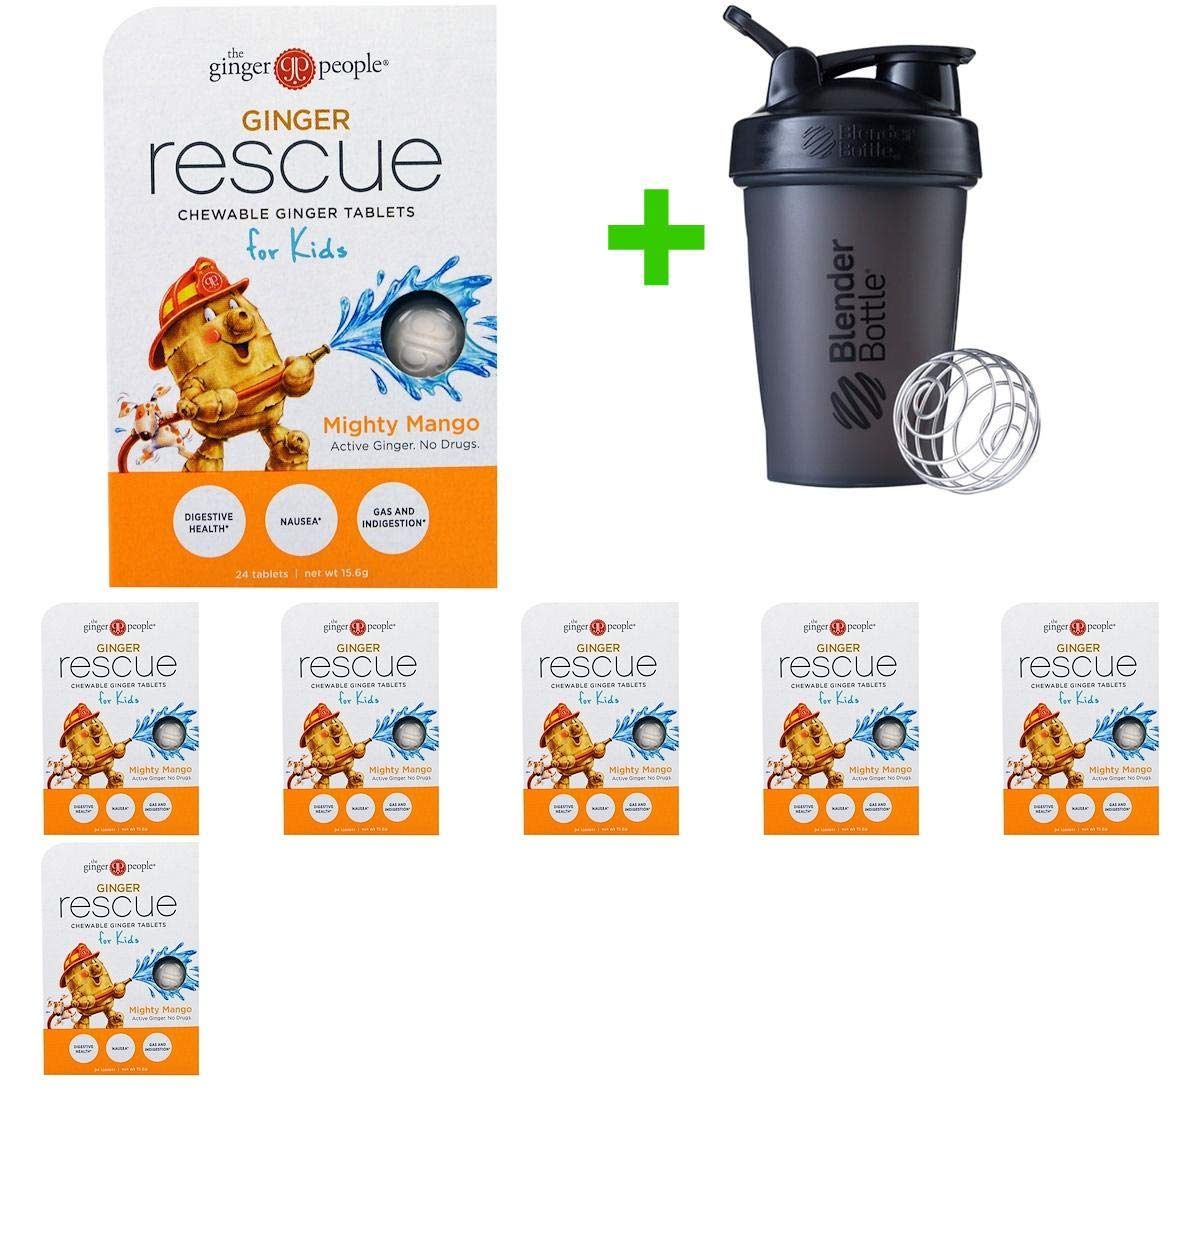 The Ginger People, Ginger Rescue, Chewable Ginger Tablets for Kids, Mighty Mango, 24 Tablets (15.6 g)(7 Packs)+ Assorted Sundesa, BlenderBottle, Classic with Loop, 20 oz